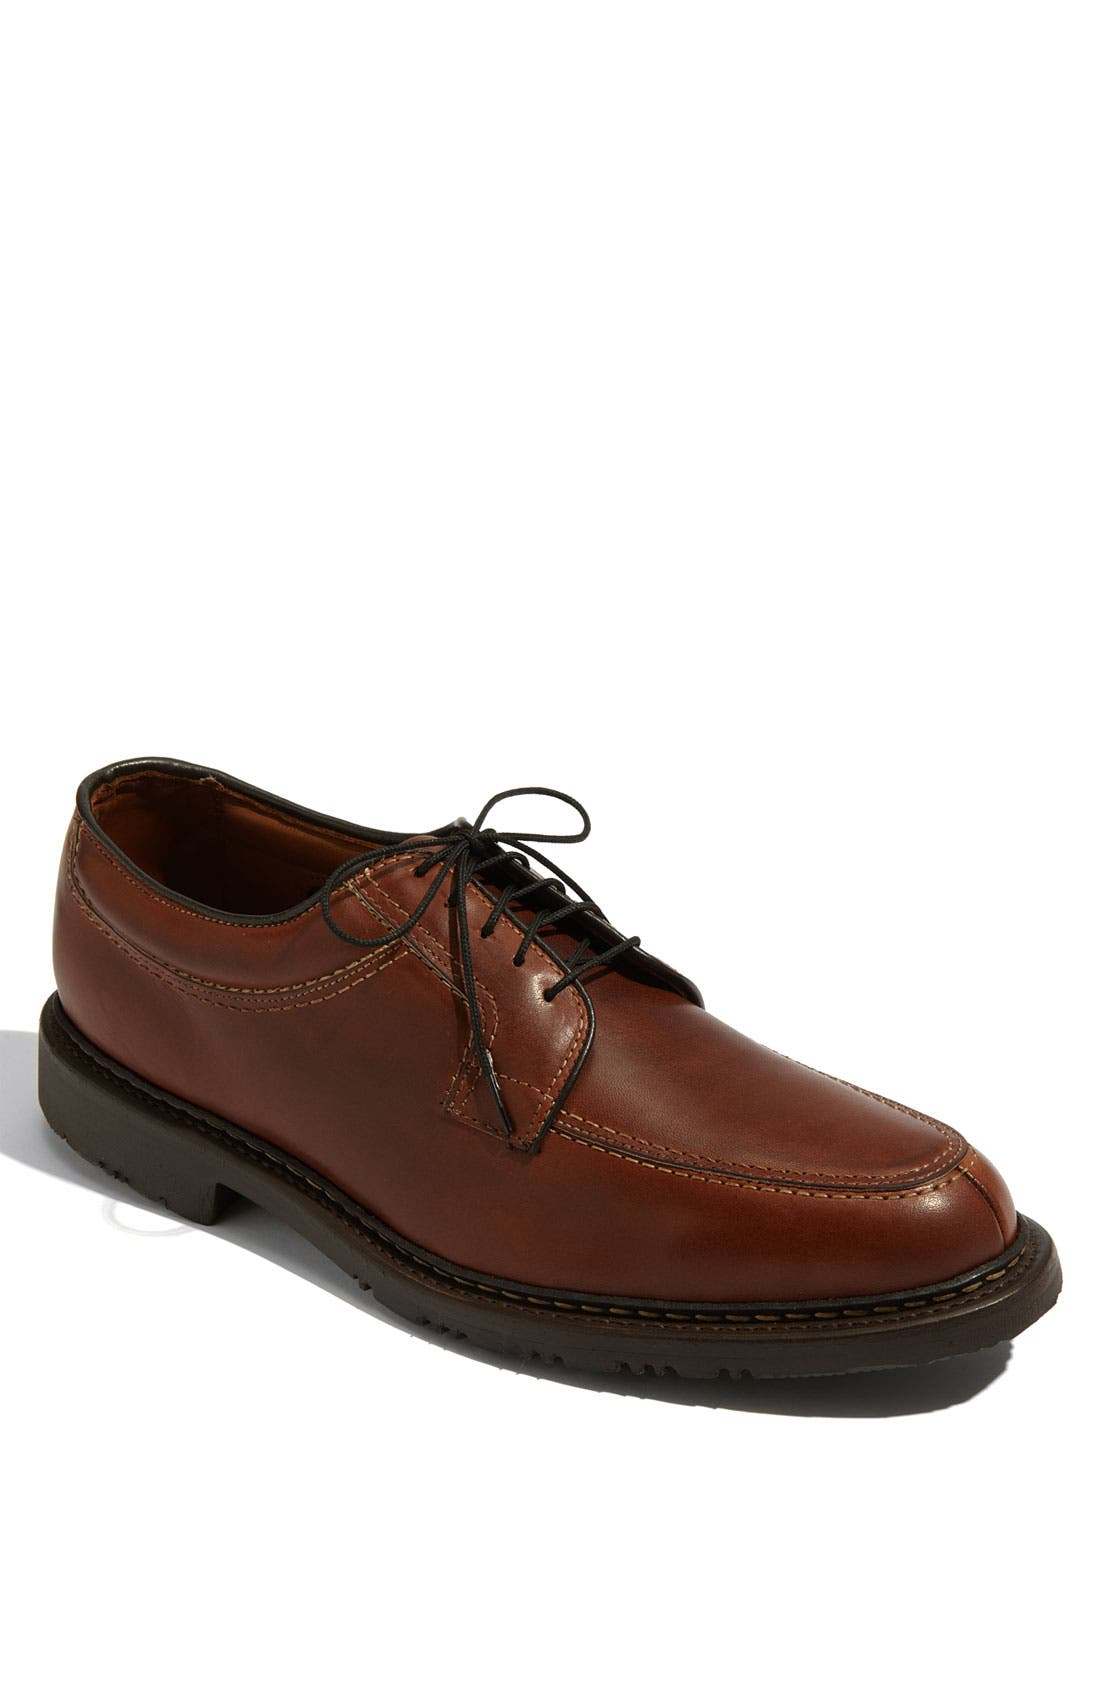 Alternate Image 1 Selected - Allen Edmonds 'Wilbert' Split Toe Derby (Men)